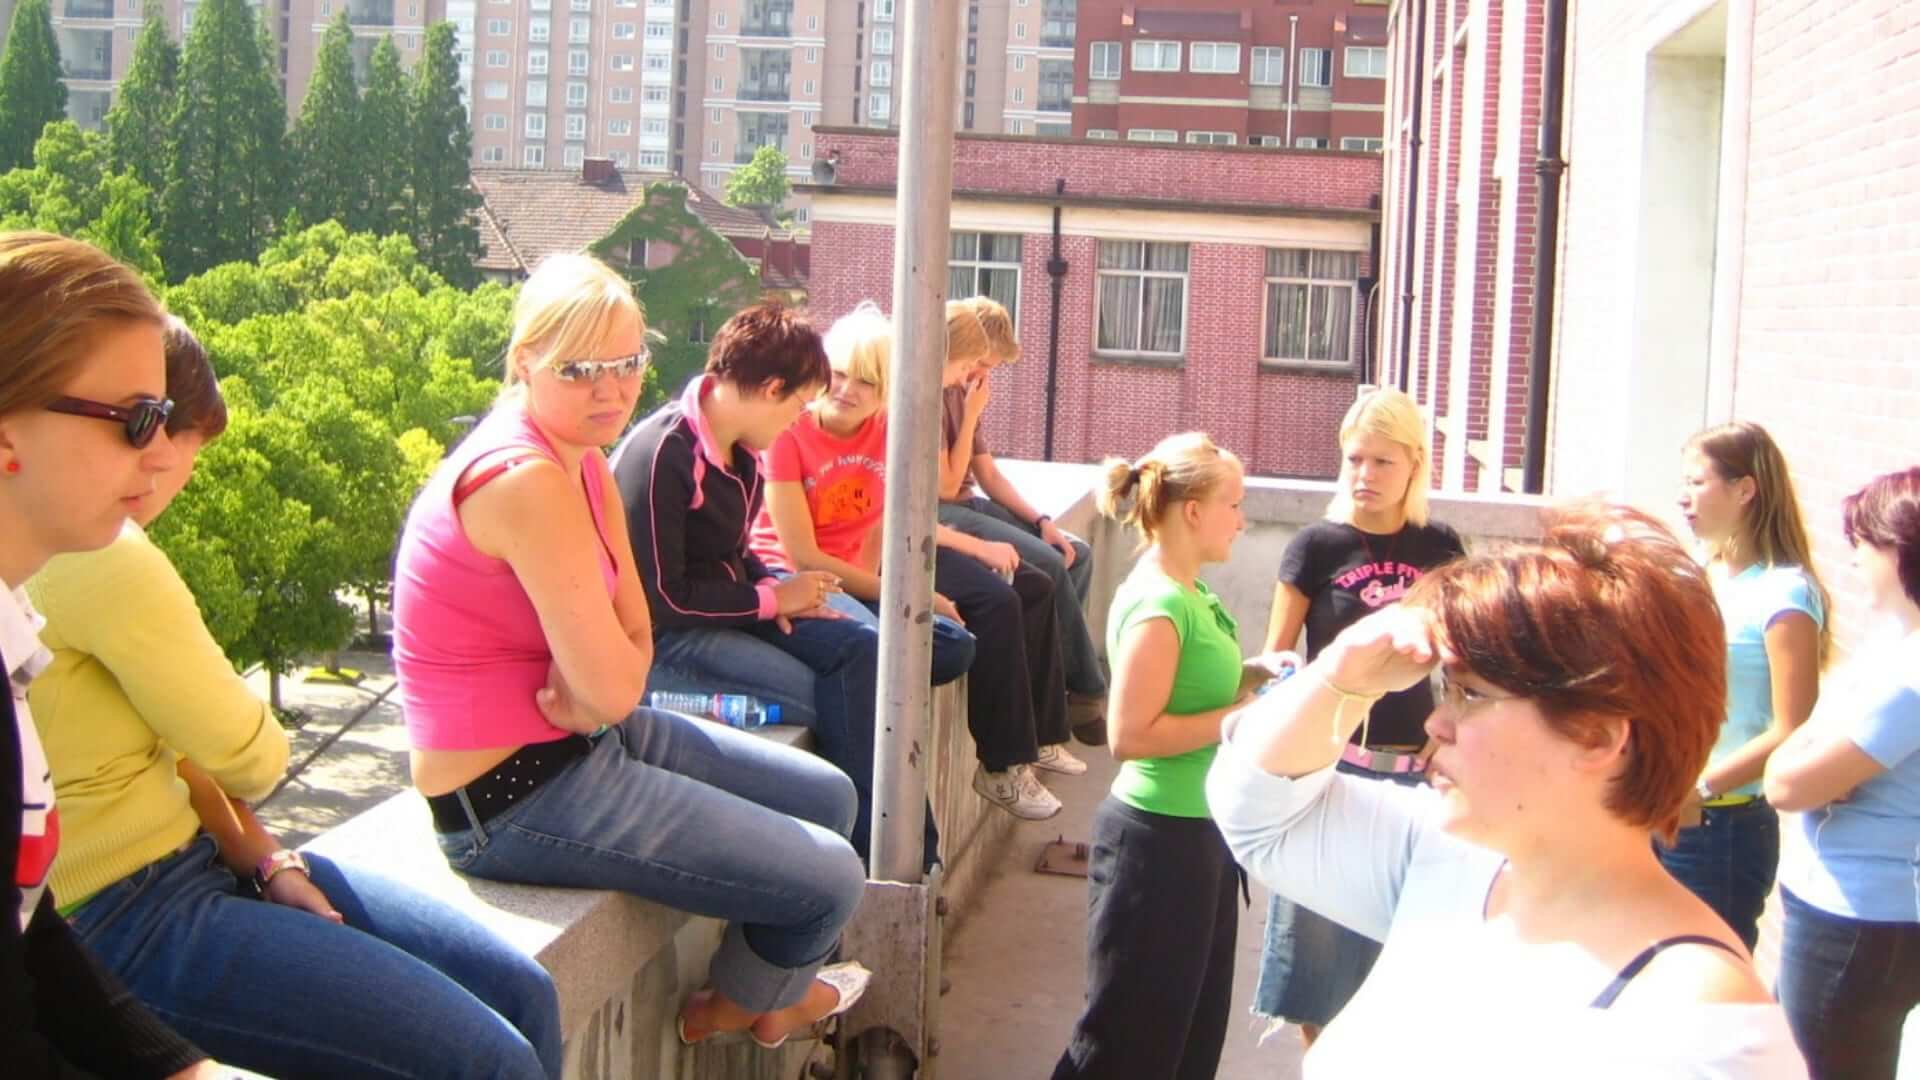 A group of students is sitting and standing on a balcony while they are talking to eachother during sunny weather in Shanghai.